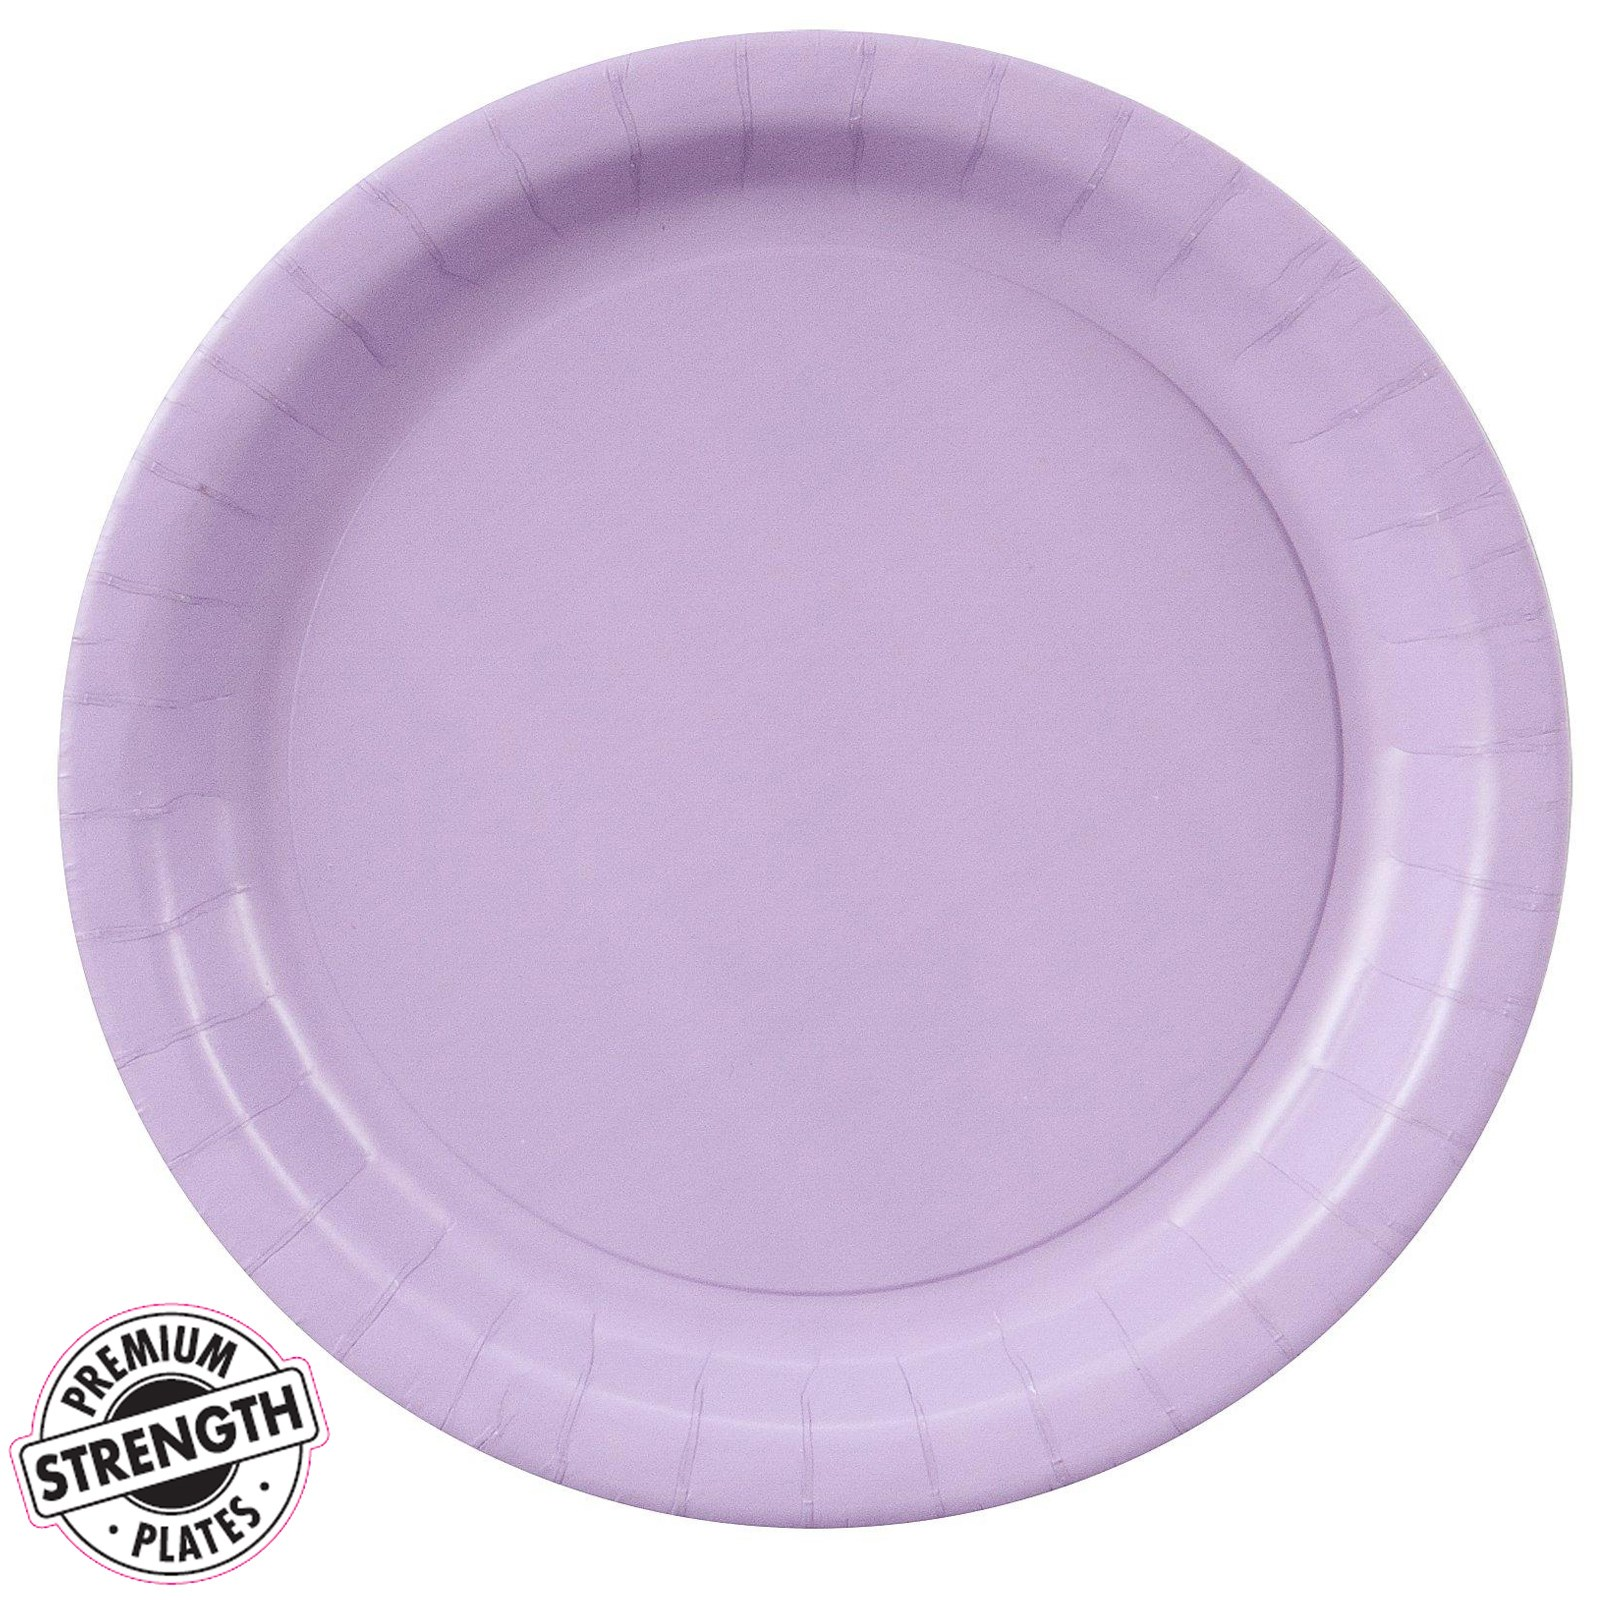 luscious lavender lavender dinner plates 24 count. Black Bedroom Furniture Sets. Home Design Ideas